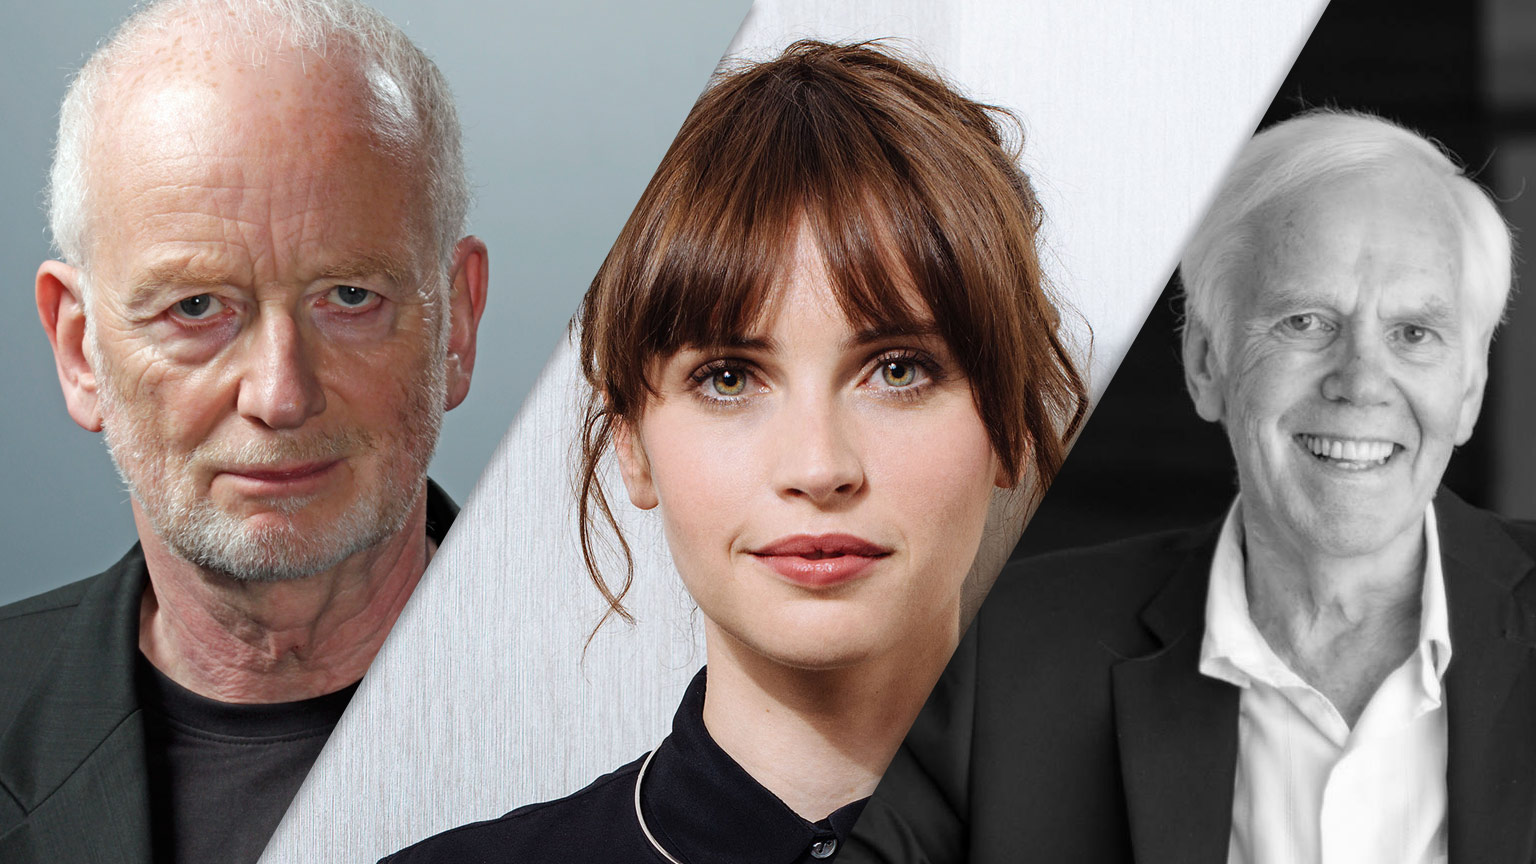 Rogue One's Felicity Jones to Appear at Star Wars Celebration Orlando